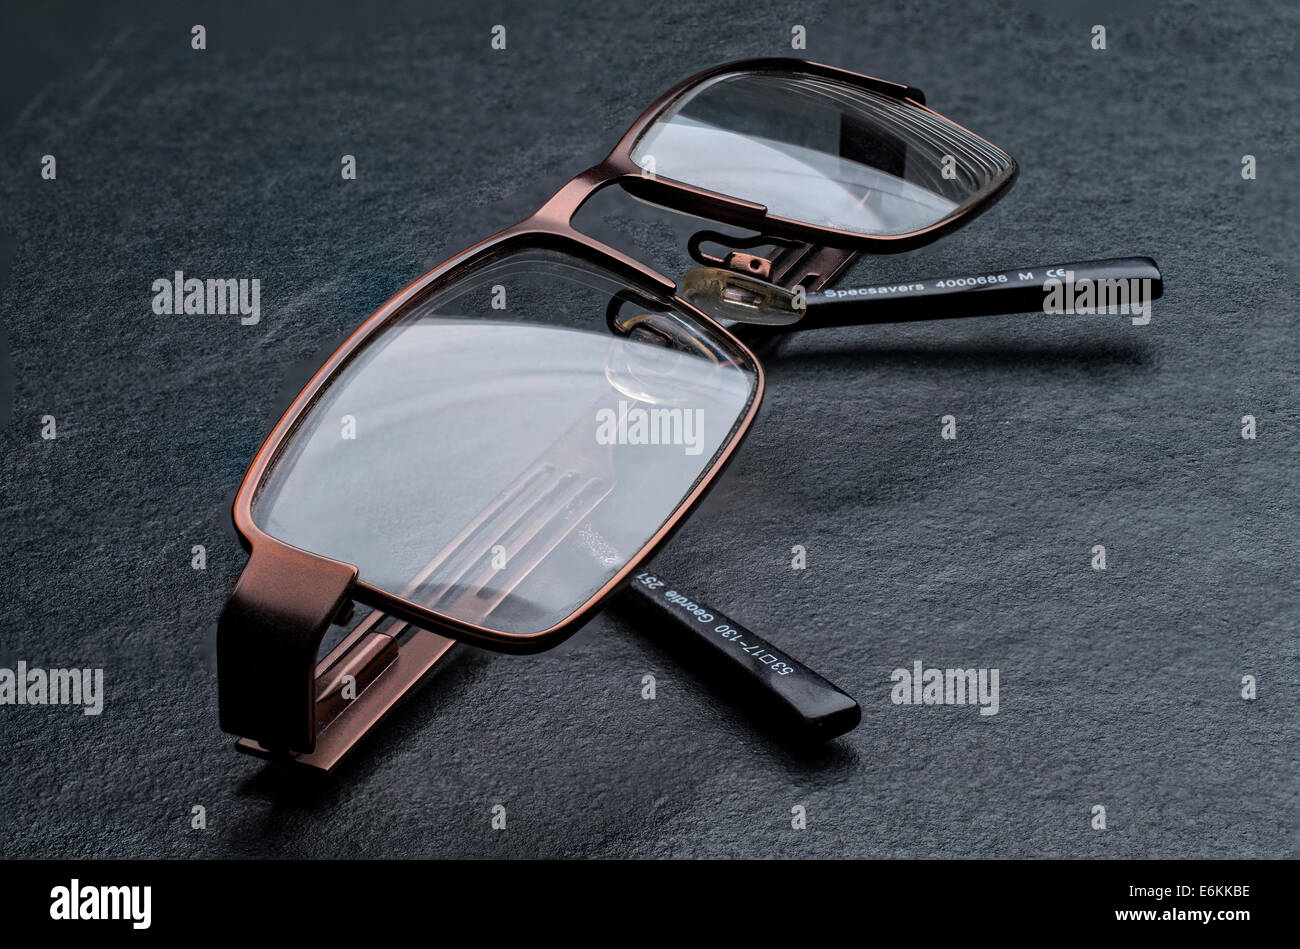 Glasses, spectacles - Stock Image